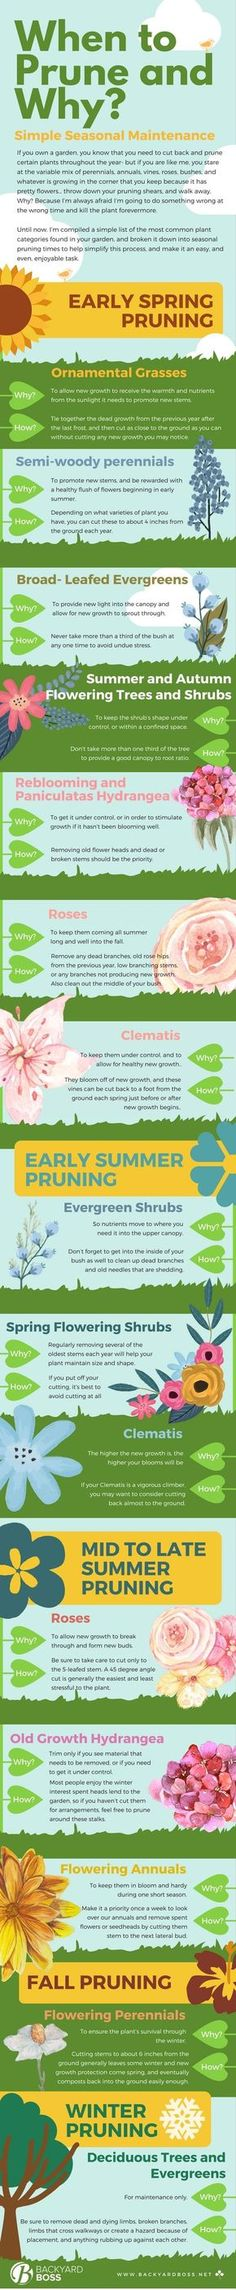 If you own a garden, you know that you need to cut back and prune certain plants throughout the year- but if you are like me, you stare at the variable mix of perennials, annuals, vines, roses, bushes, and whatever is growing in the corner that you keep because it has pretty flowers… throw down your pruning shears, and walk away. Why? Because I'm always afraid I'm going to do something wrong at the wrong time and kill the plant forevermore. Until now. I'm compiled a simple list of the most…